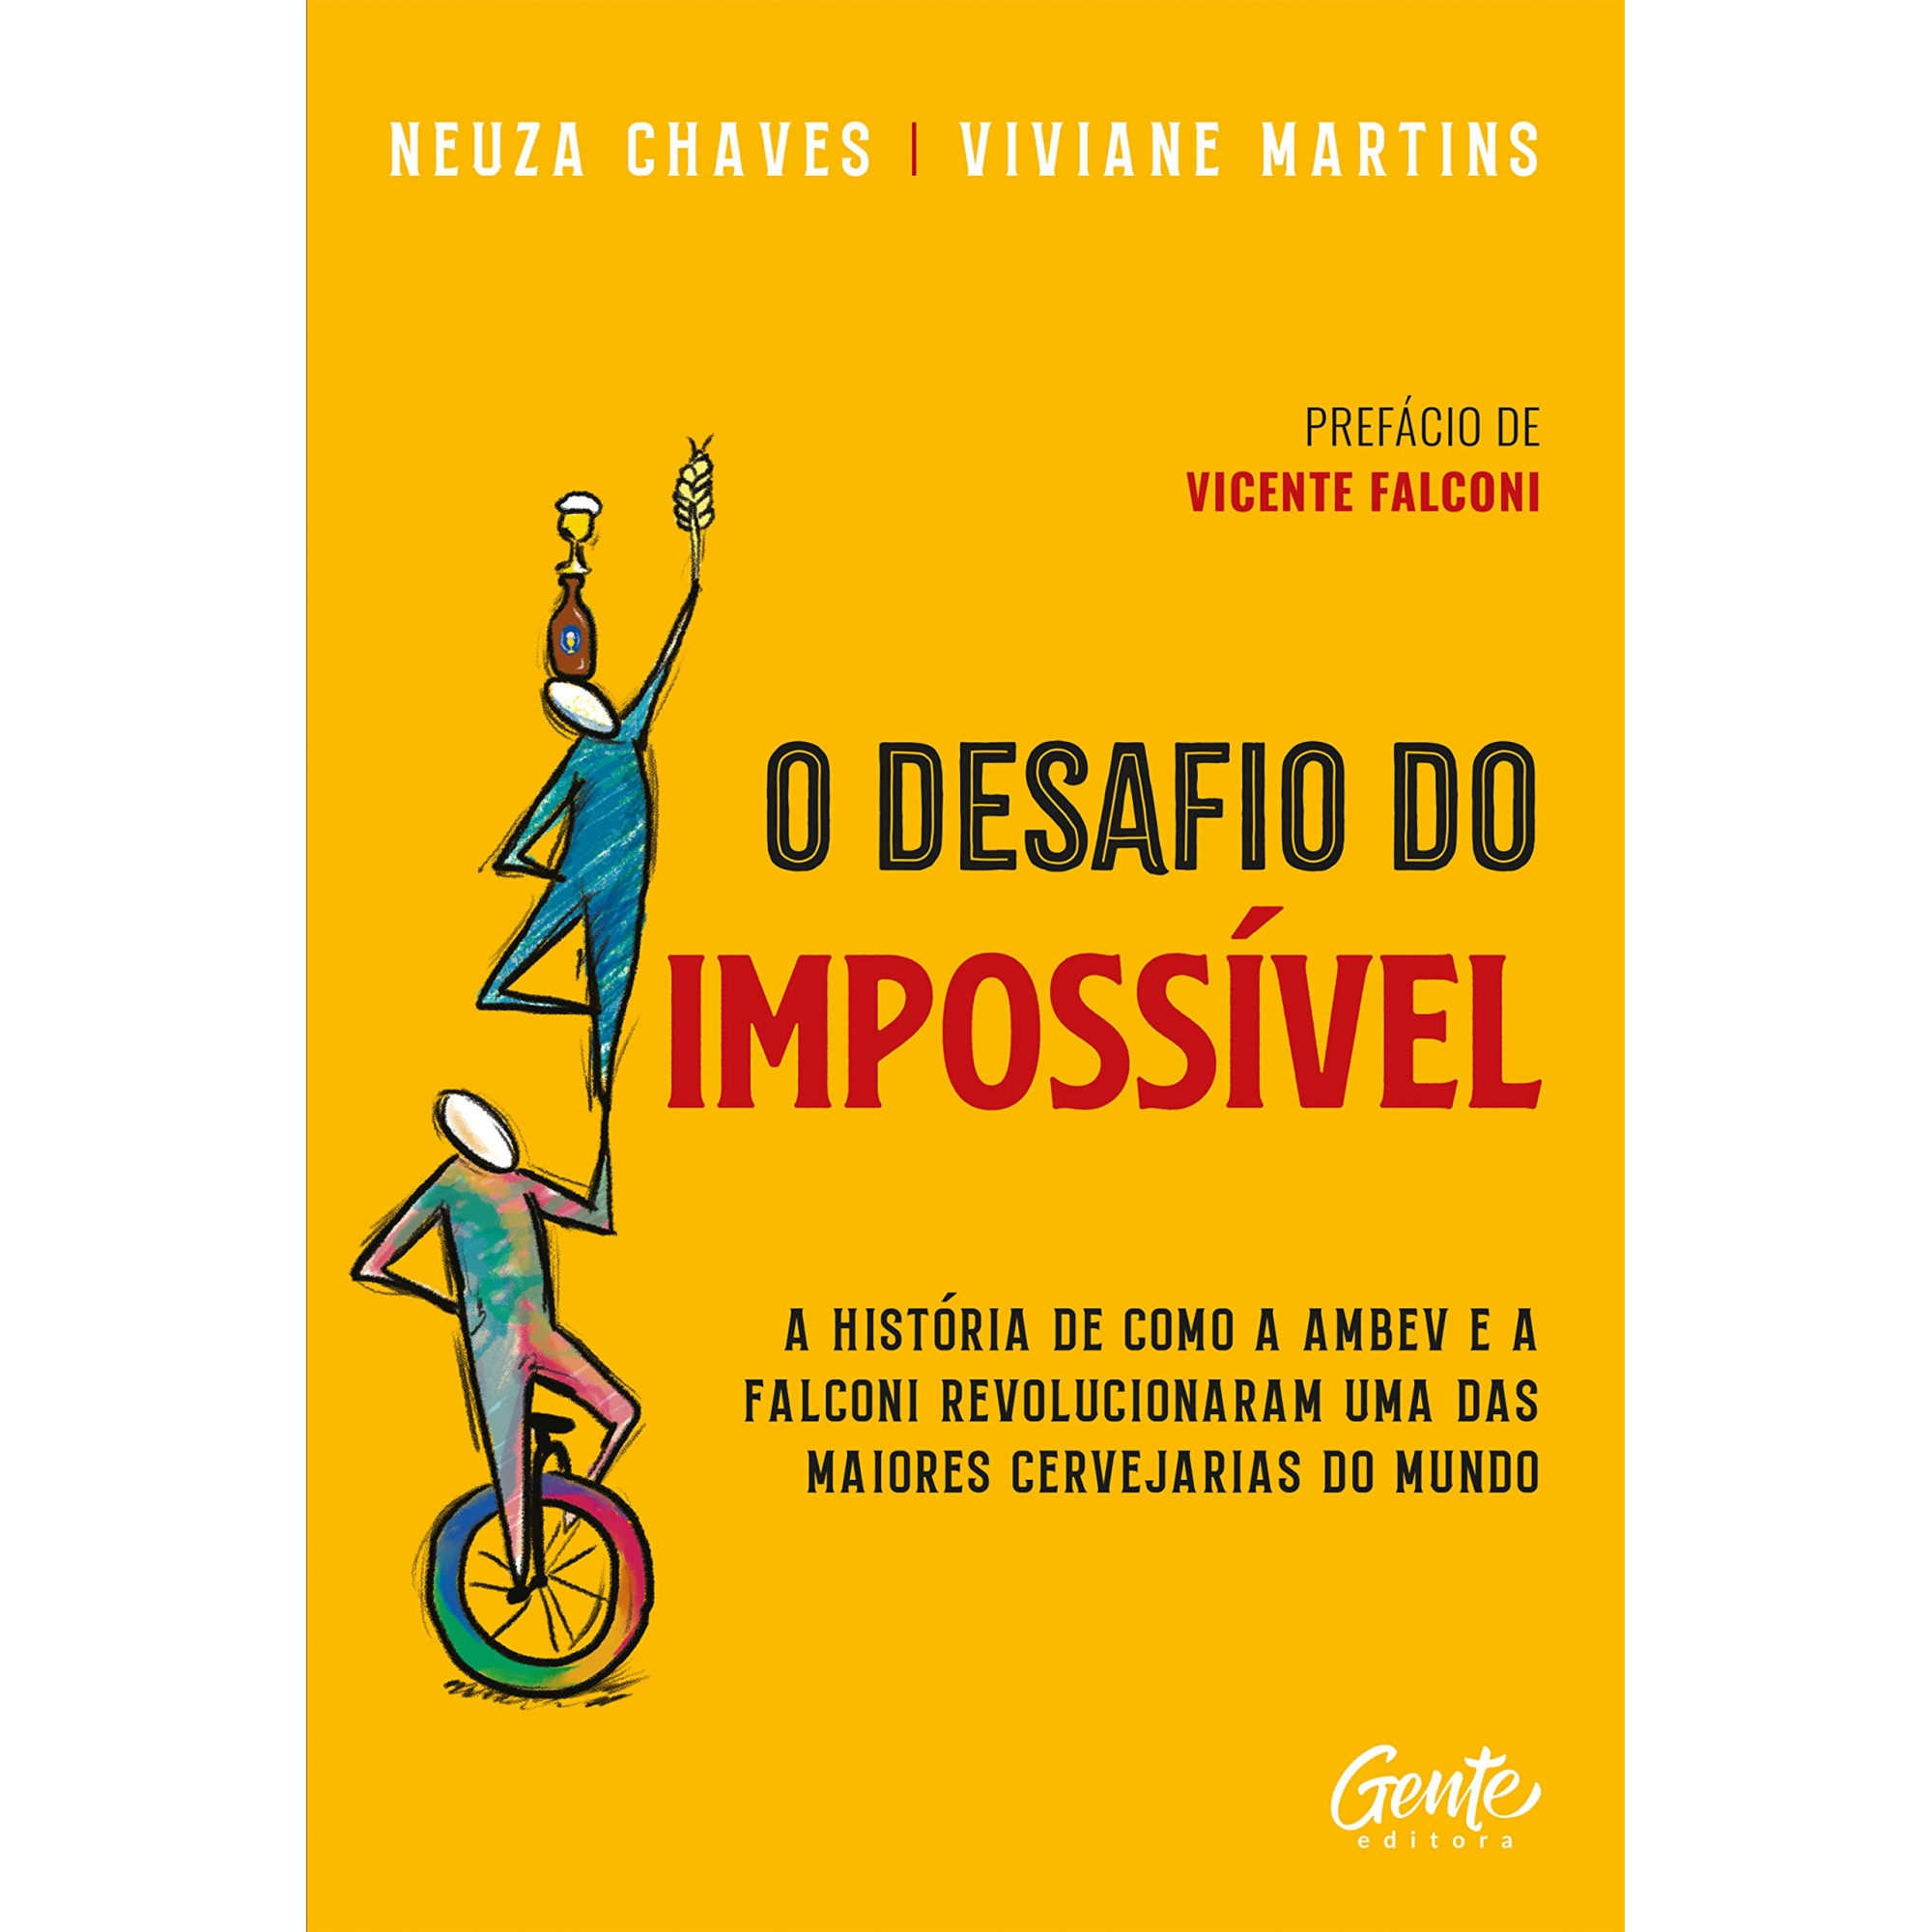 DESAFIO DO IMPOSSIVEL, O